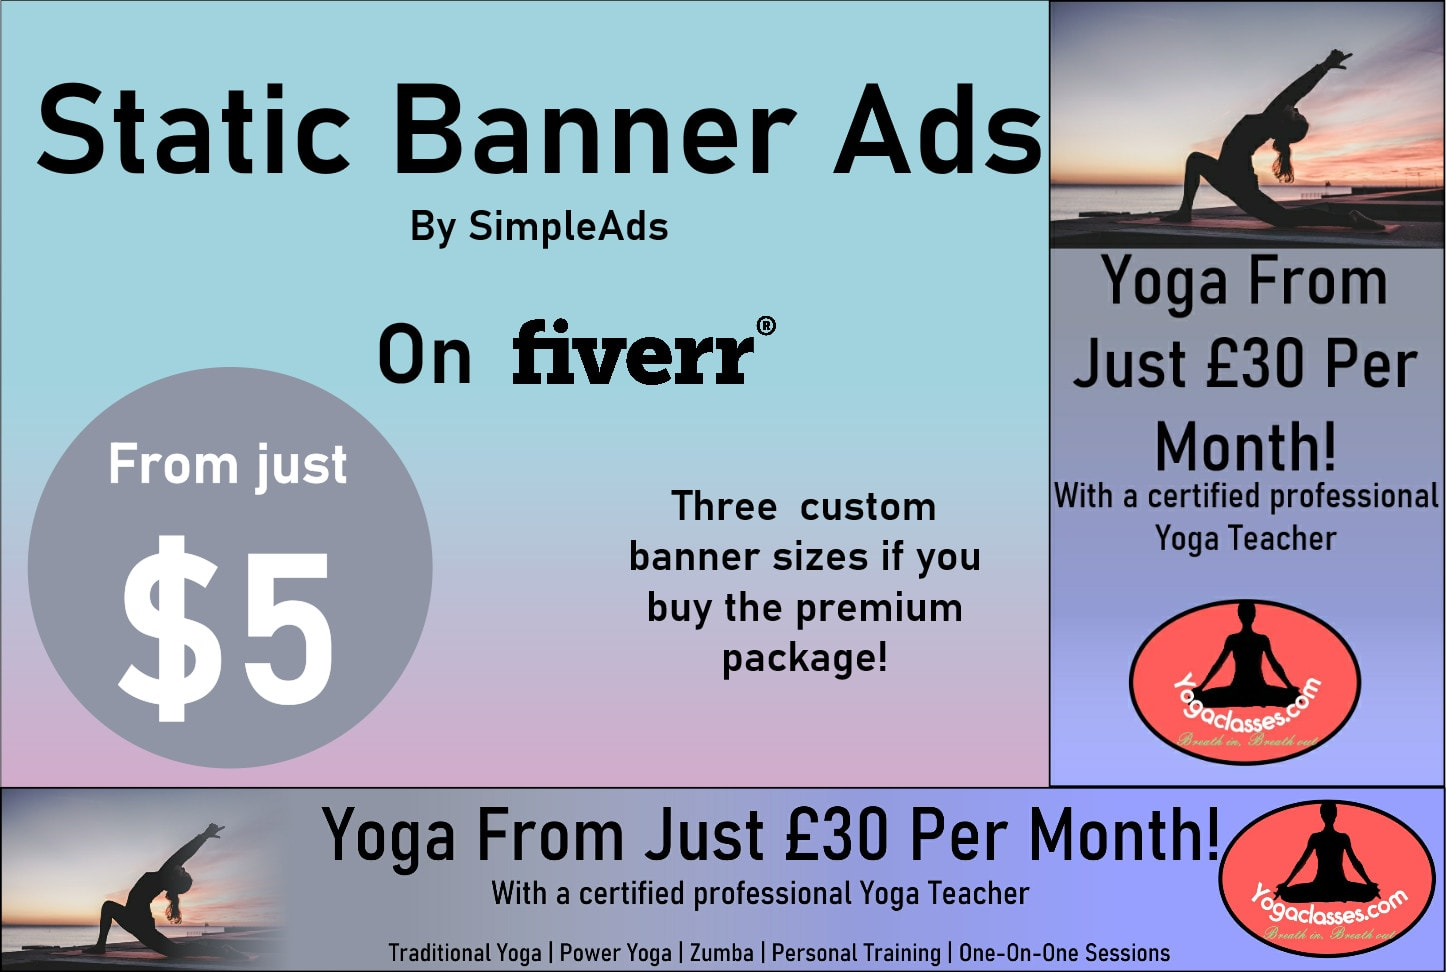 Make Simple Banner Ads For You By Simpleads